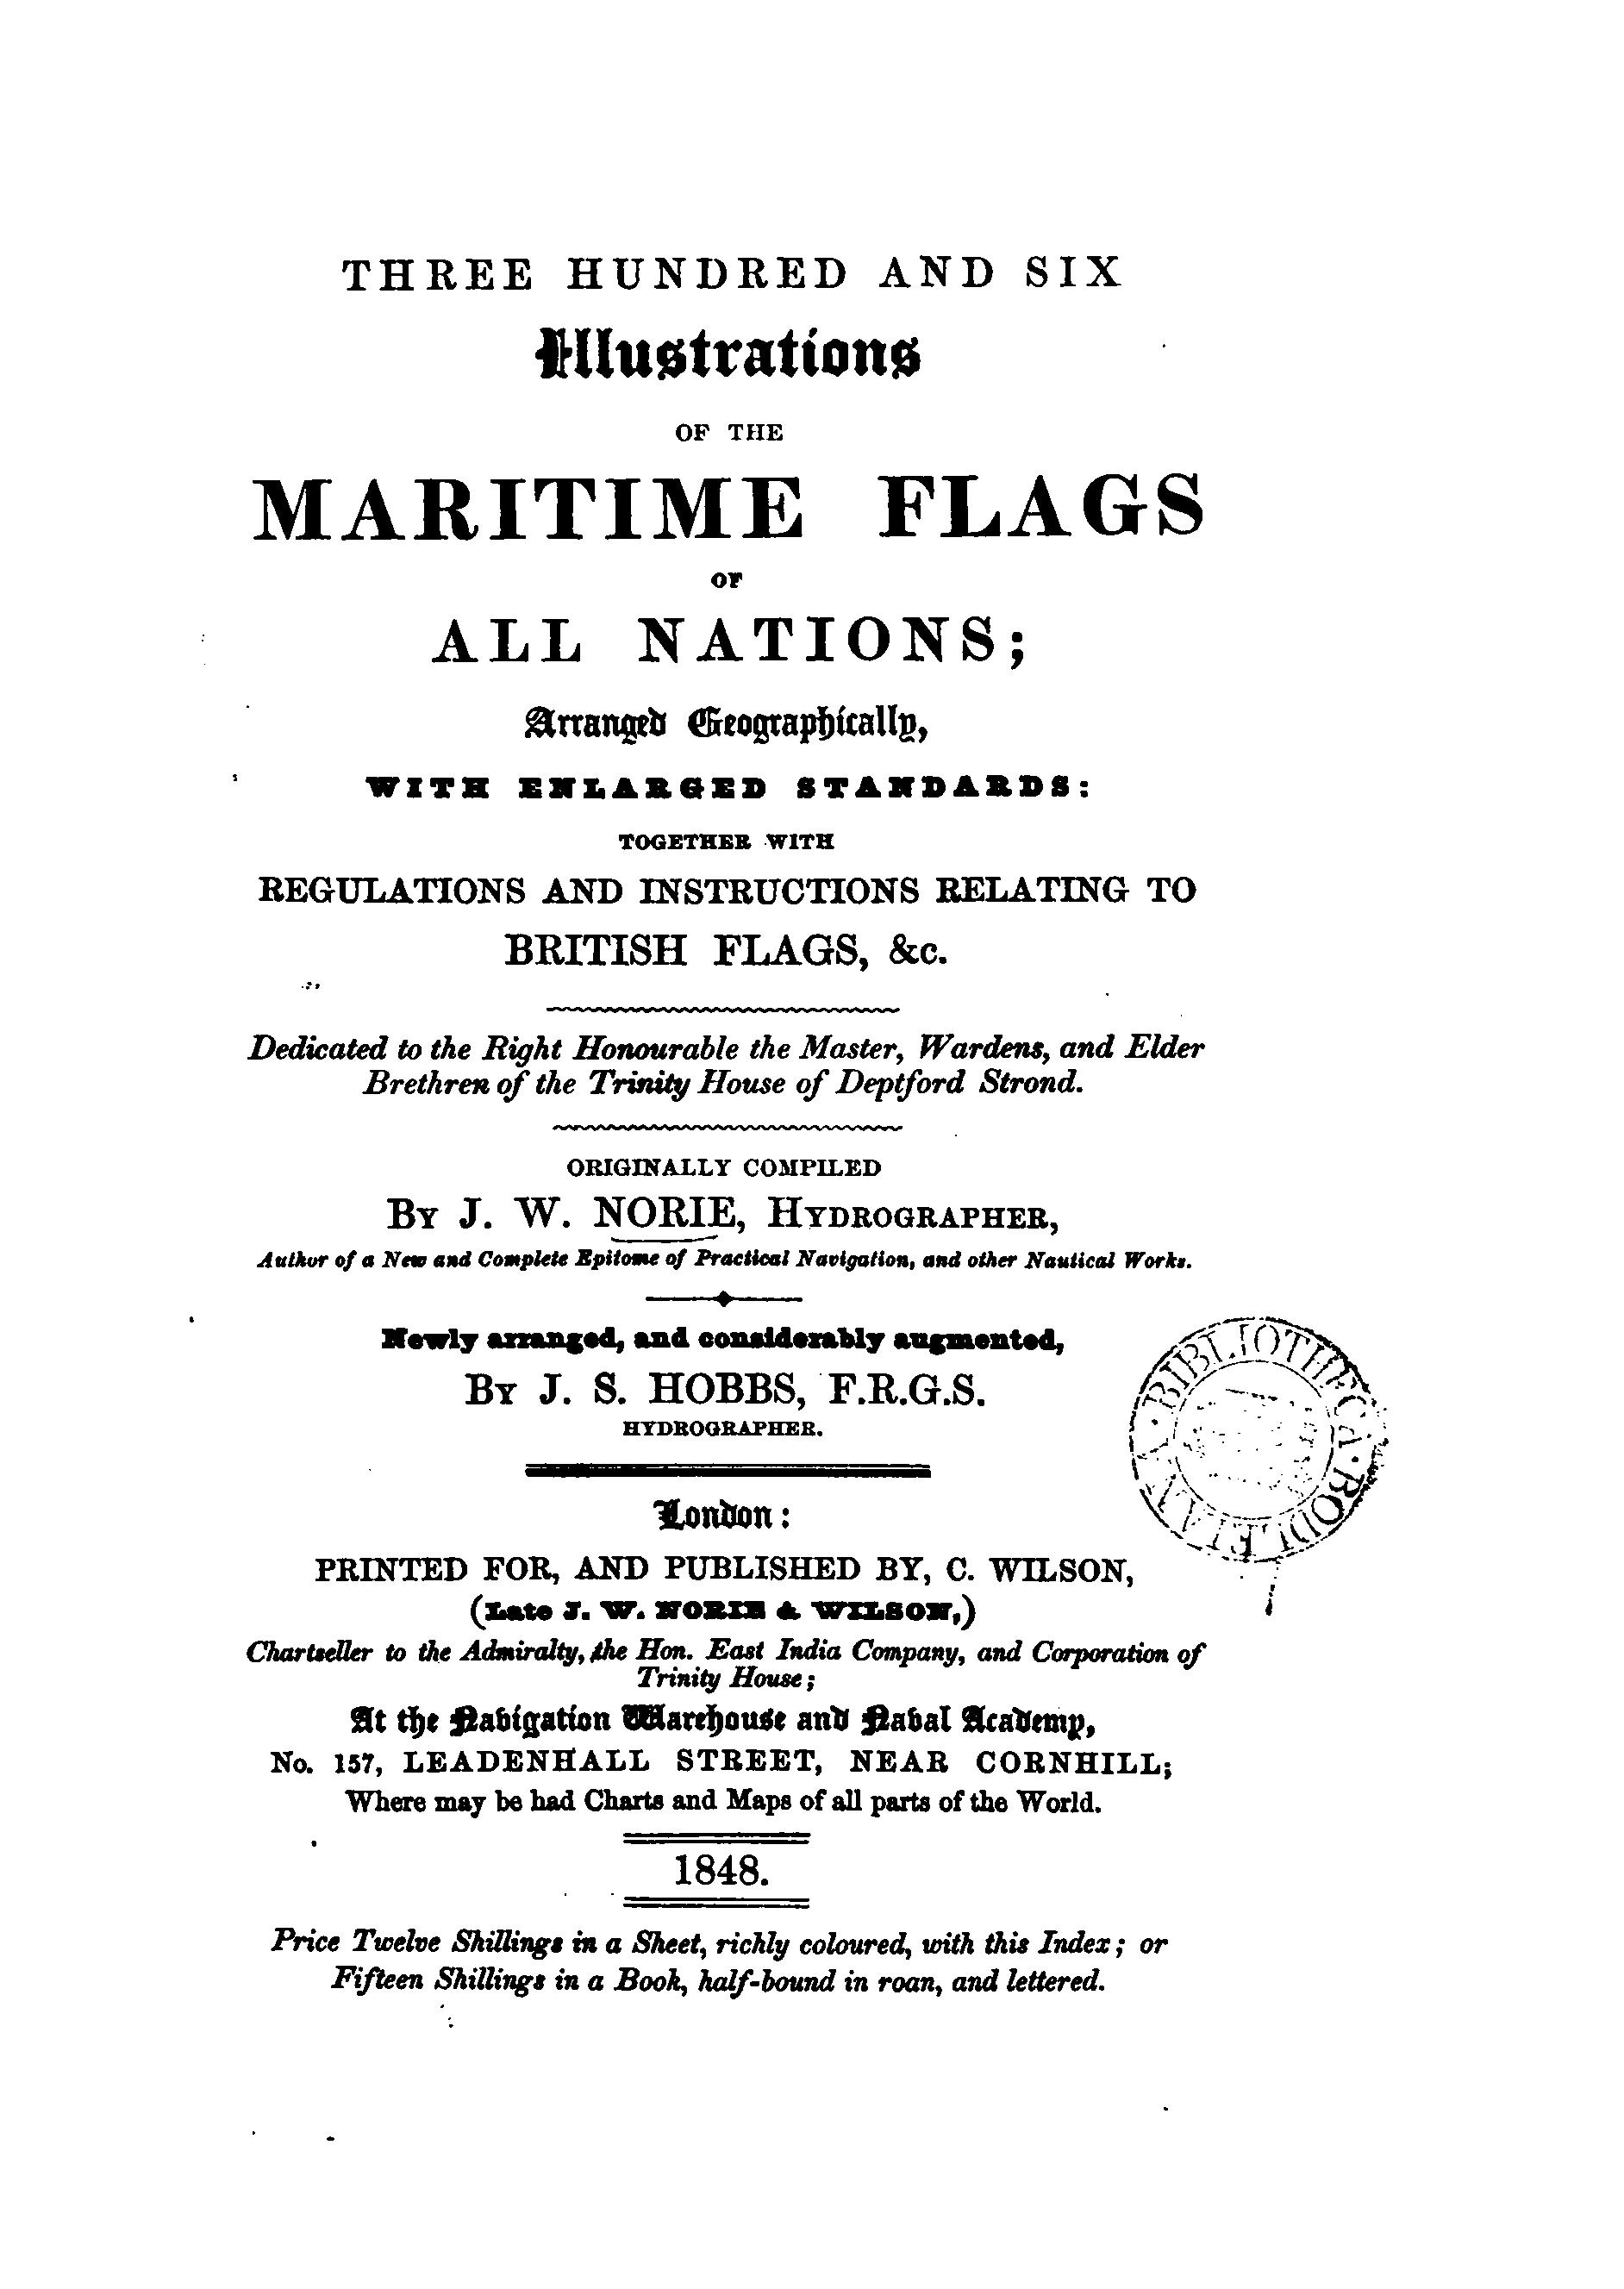 Three Hundred and Six Illustrations of the Maritime Flags of